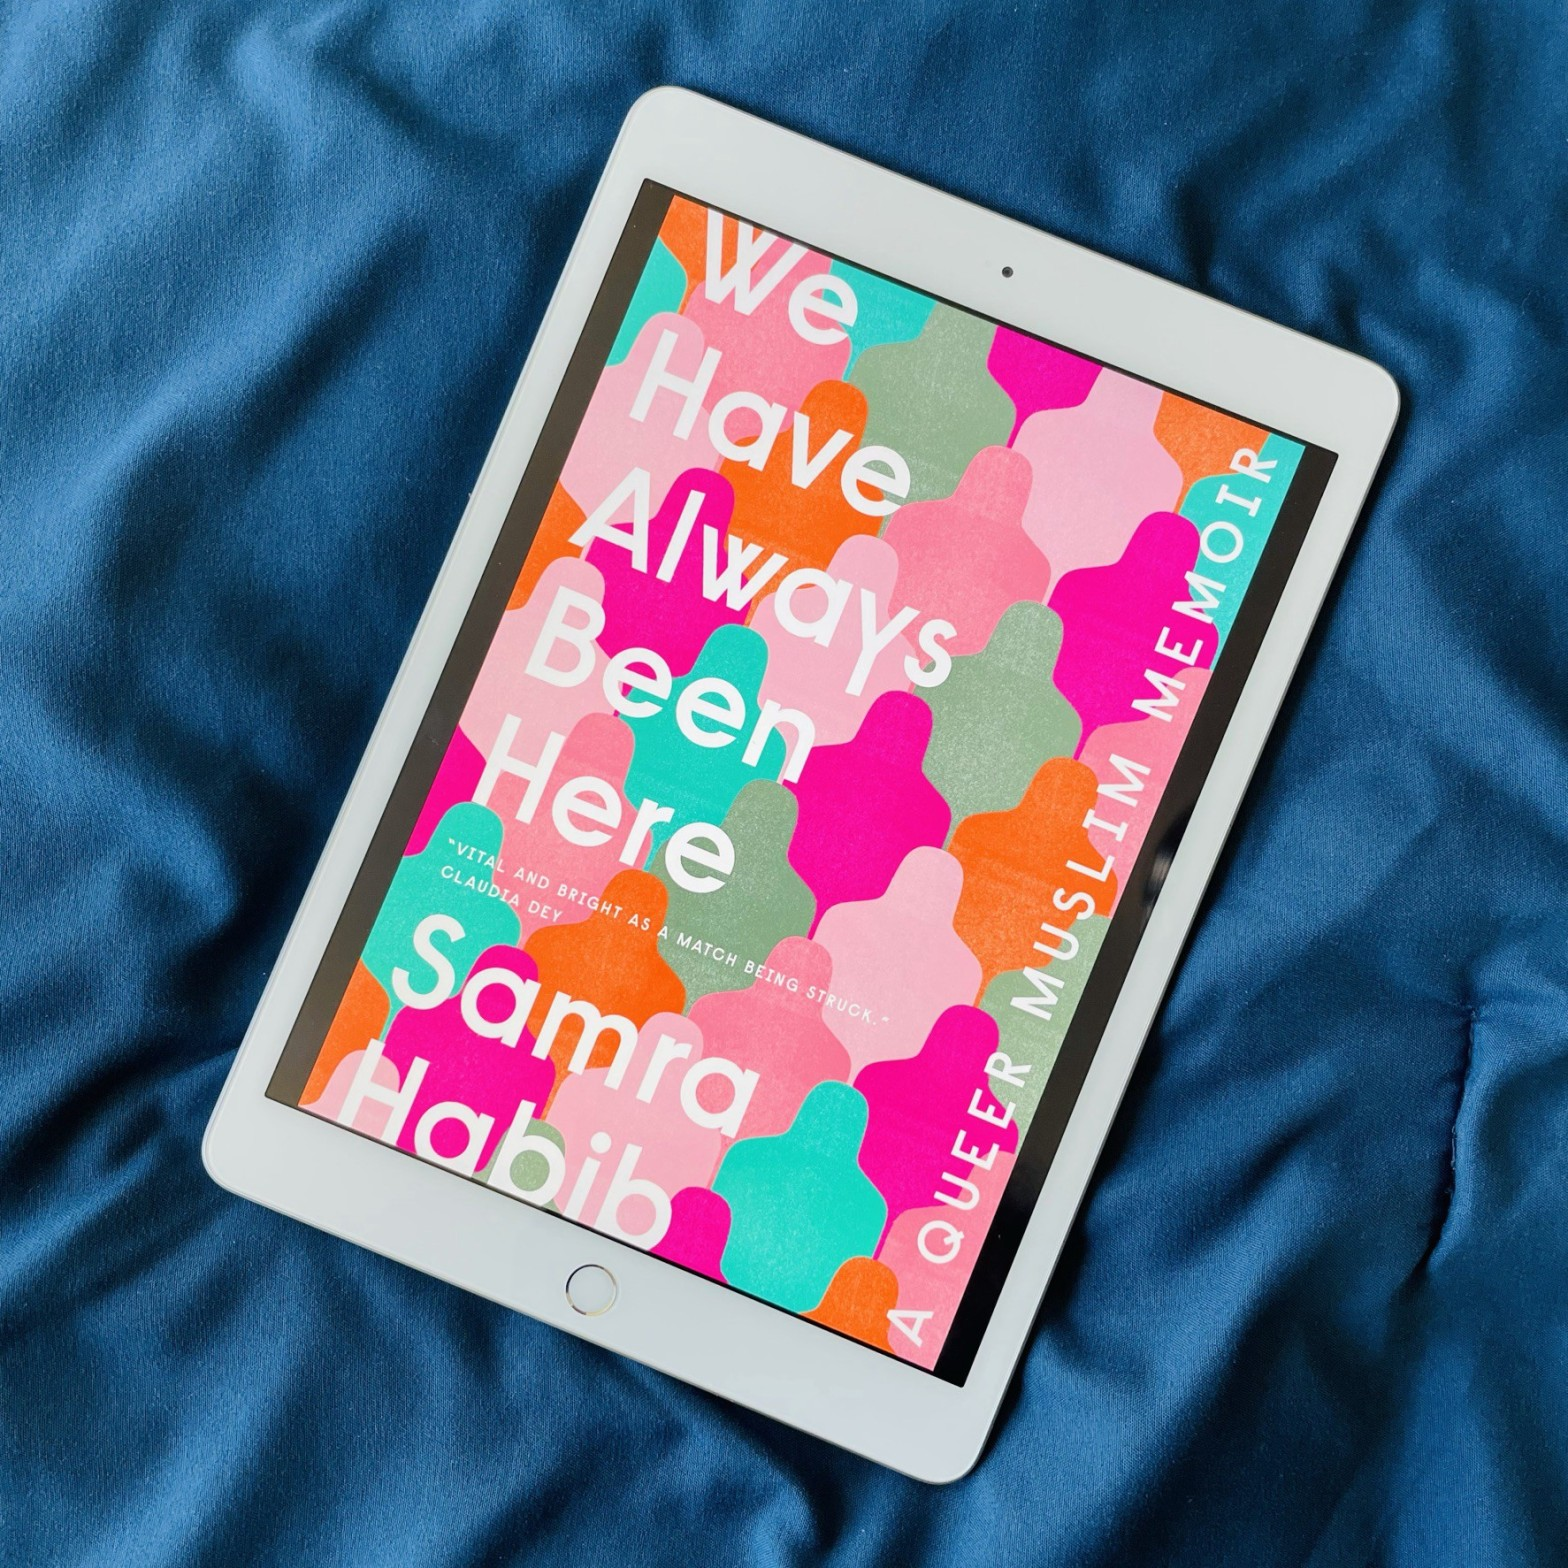 White e-reader on a satin navy fabric showing the cover of 'We have always been here', a queer Muslim memoir.